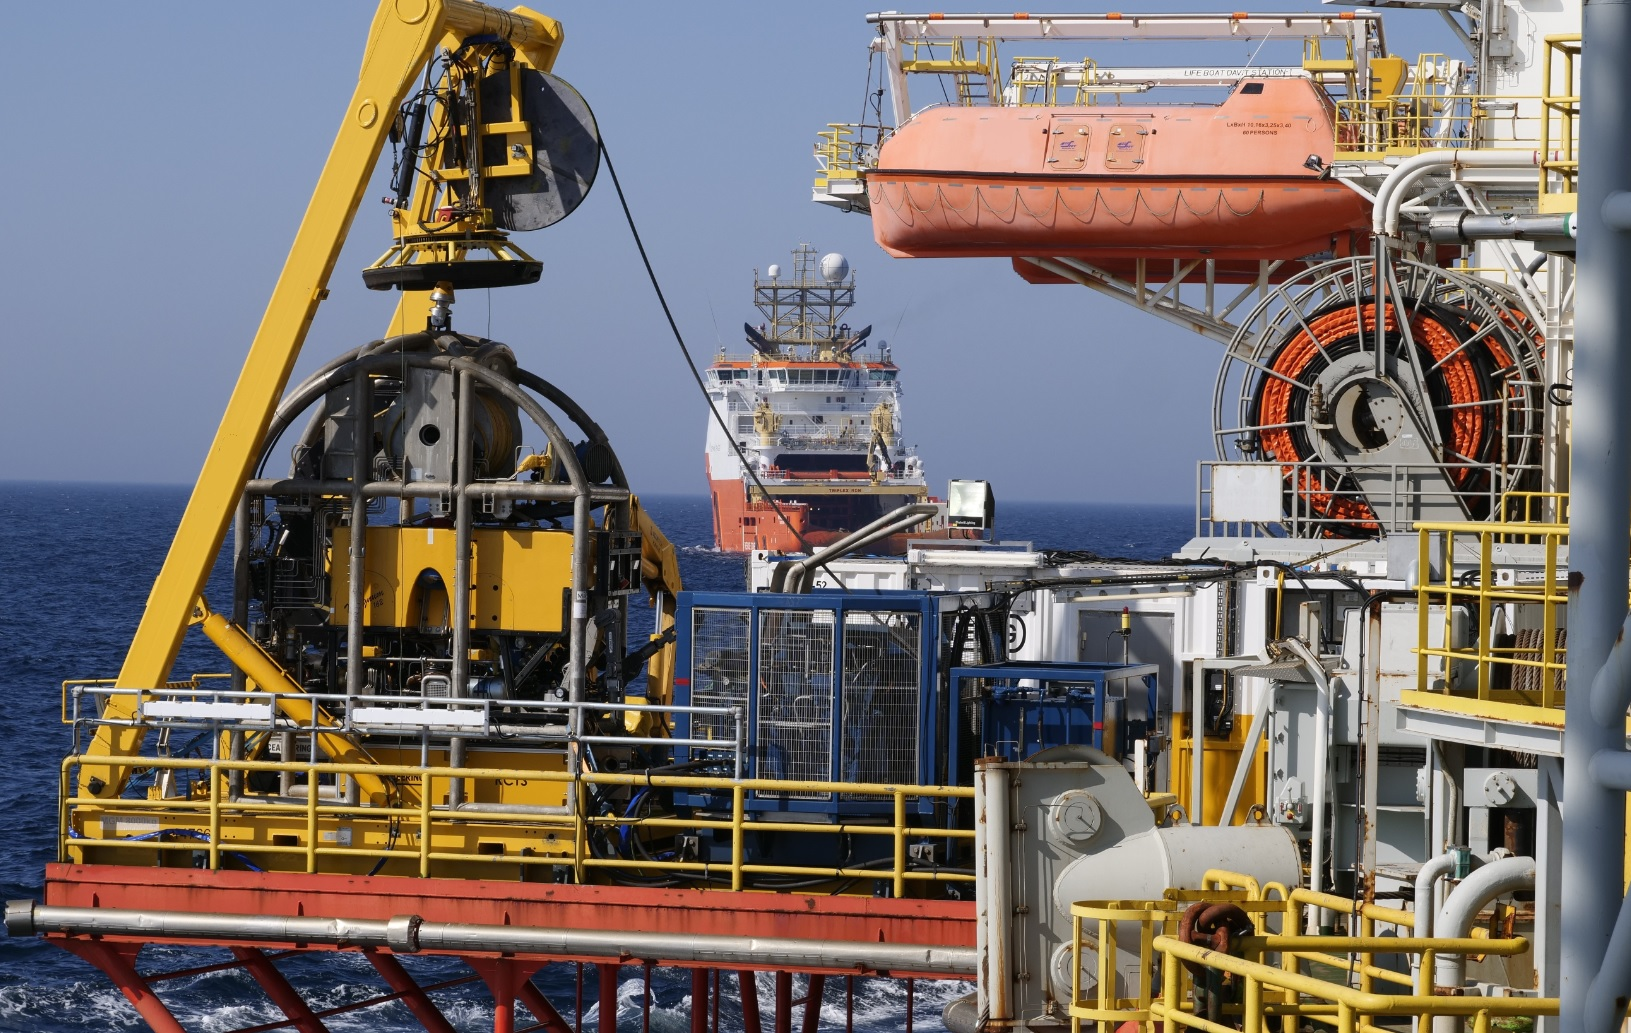 INCREASE WORKABILITY OF AN OFFSHORE TOOL WITH INNOVATION OR WITH ADDING SIMPLICITY?